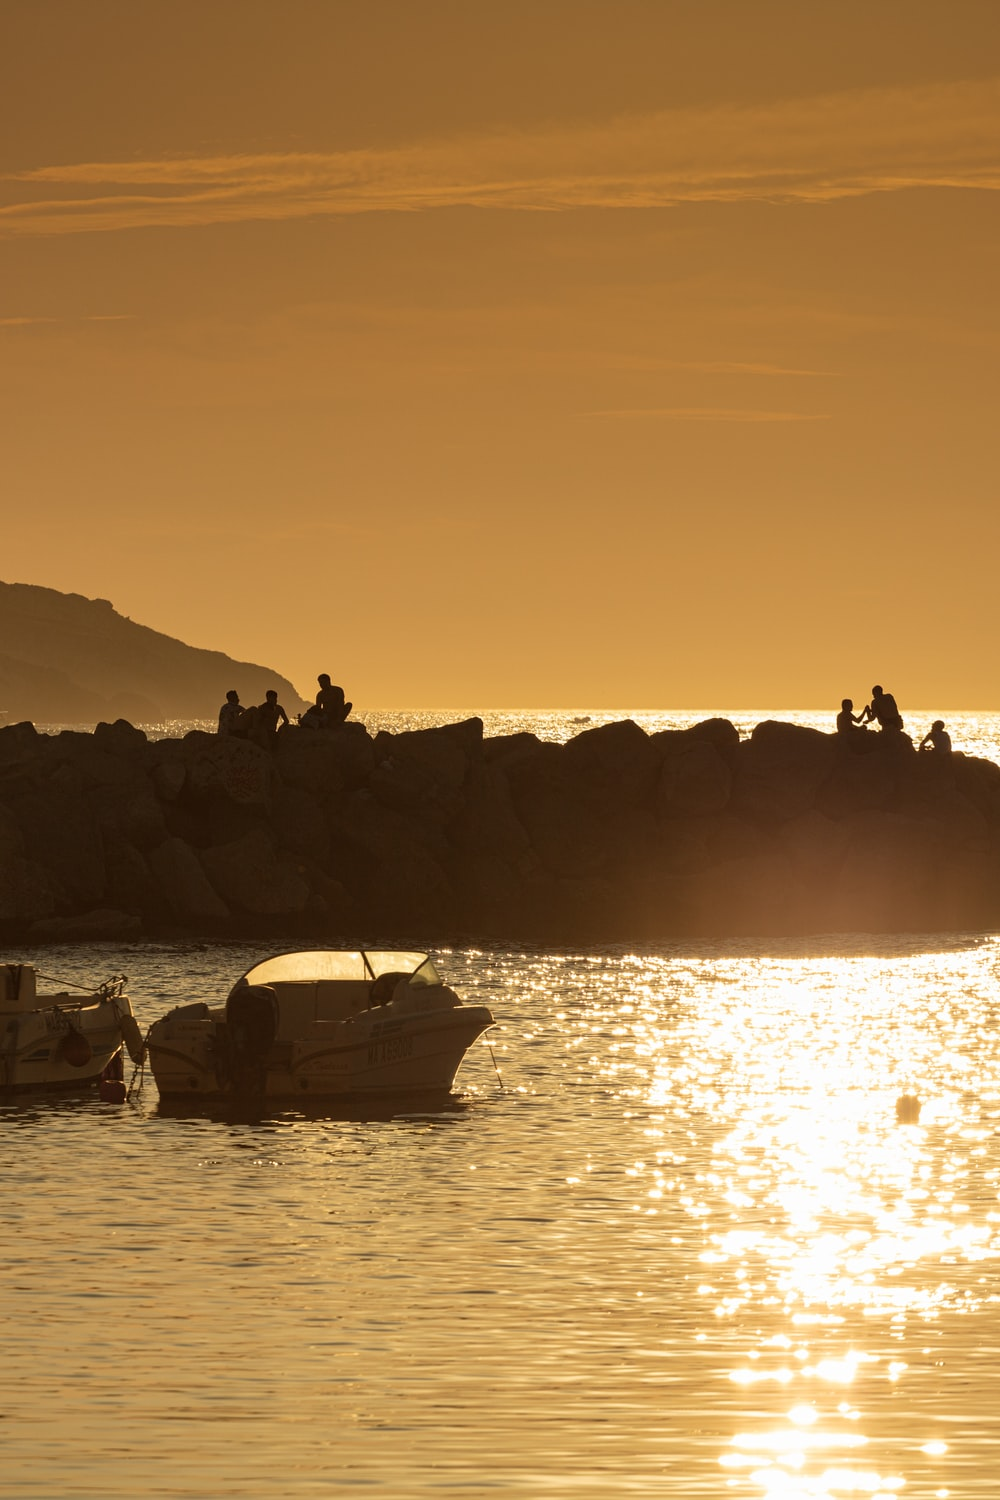 silhouette of people on boat on water during sunset